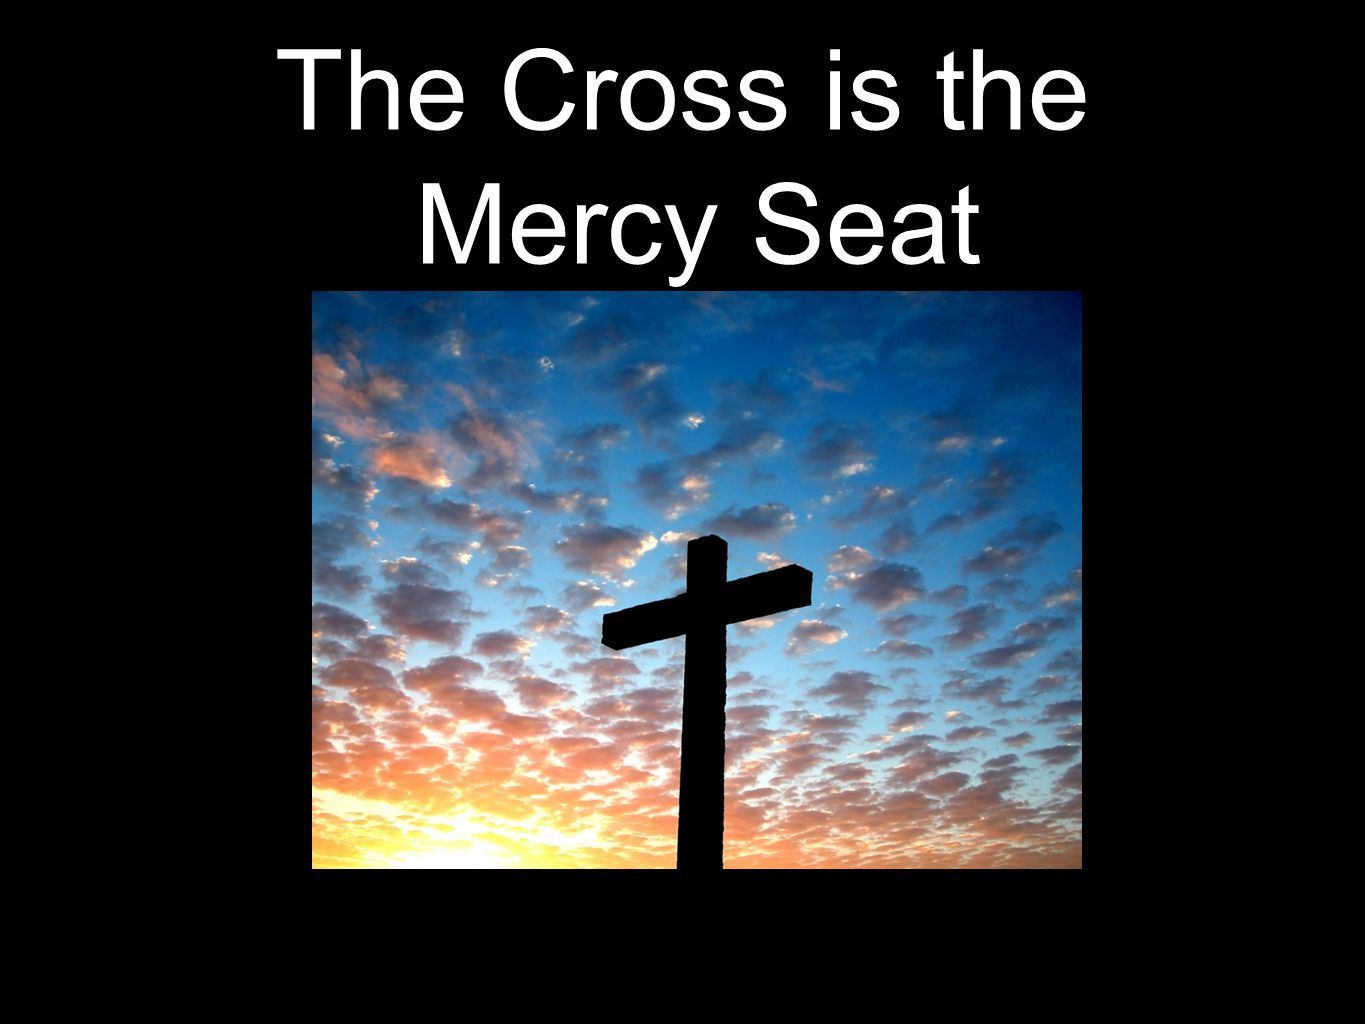 The Cross is the Mercy Seat